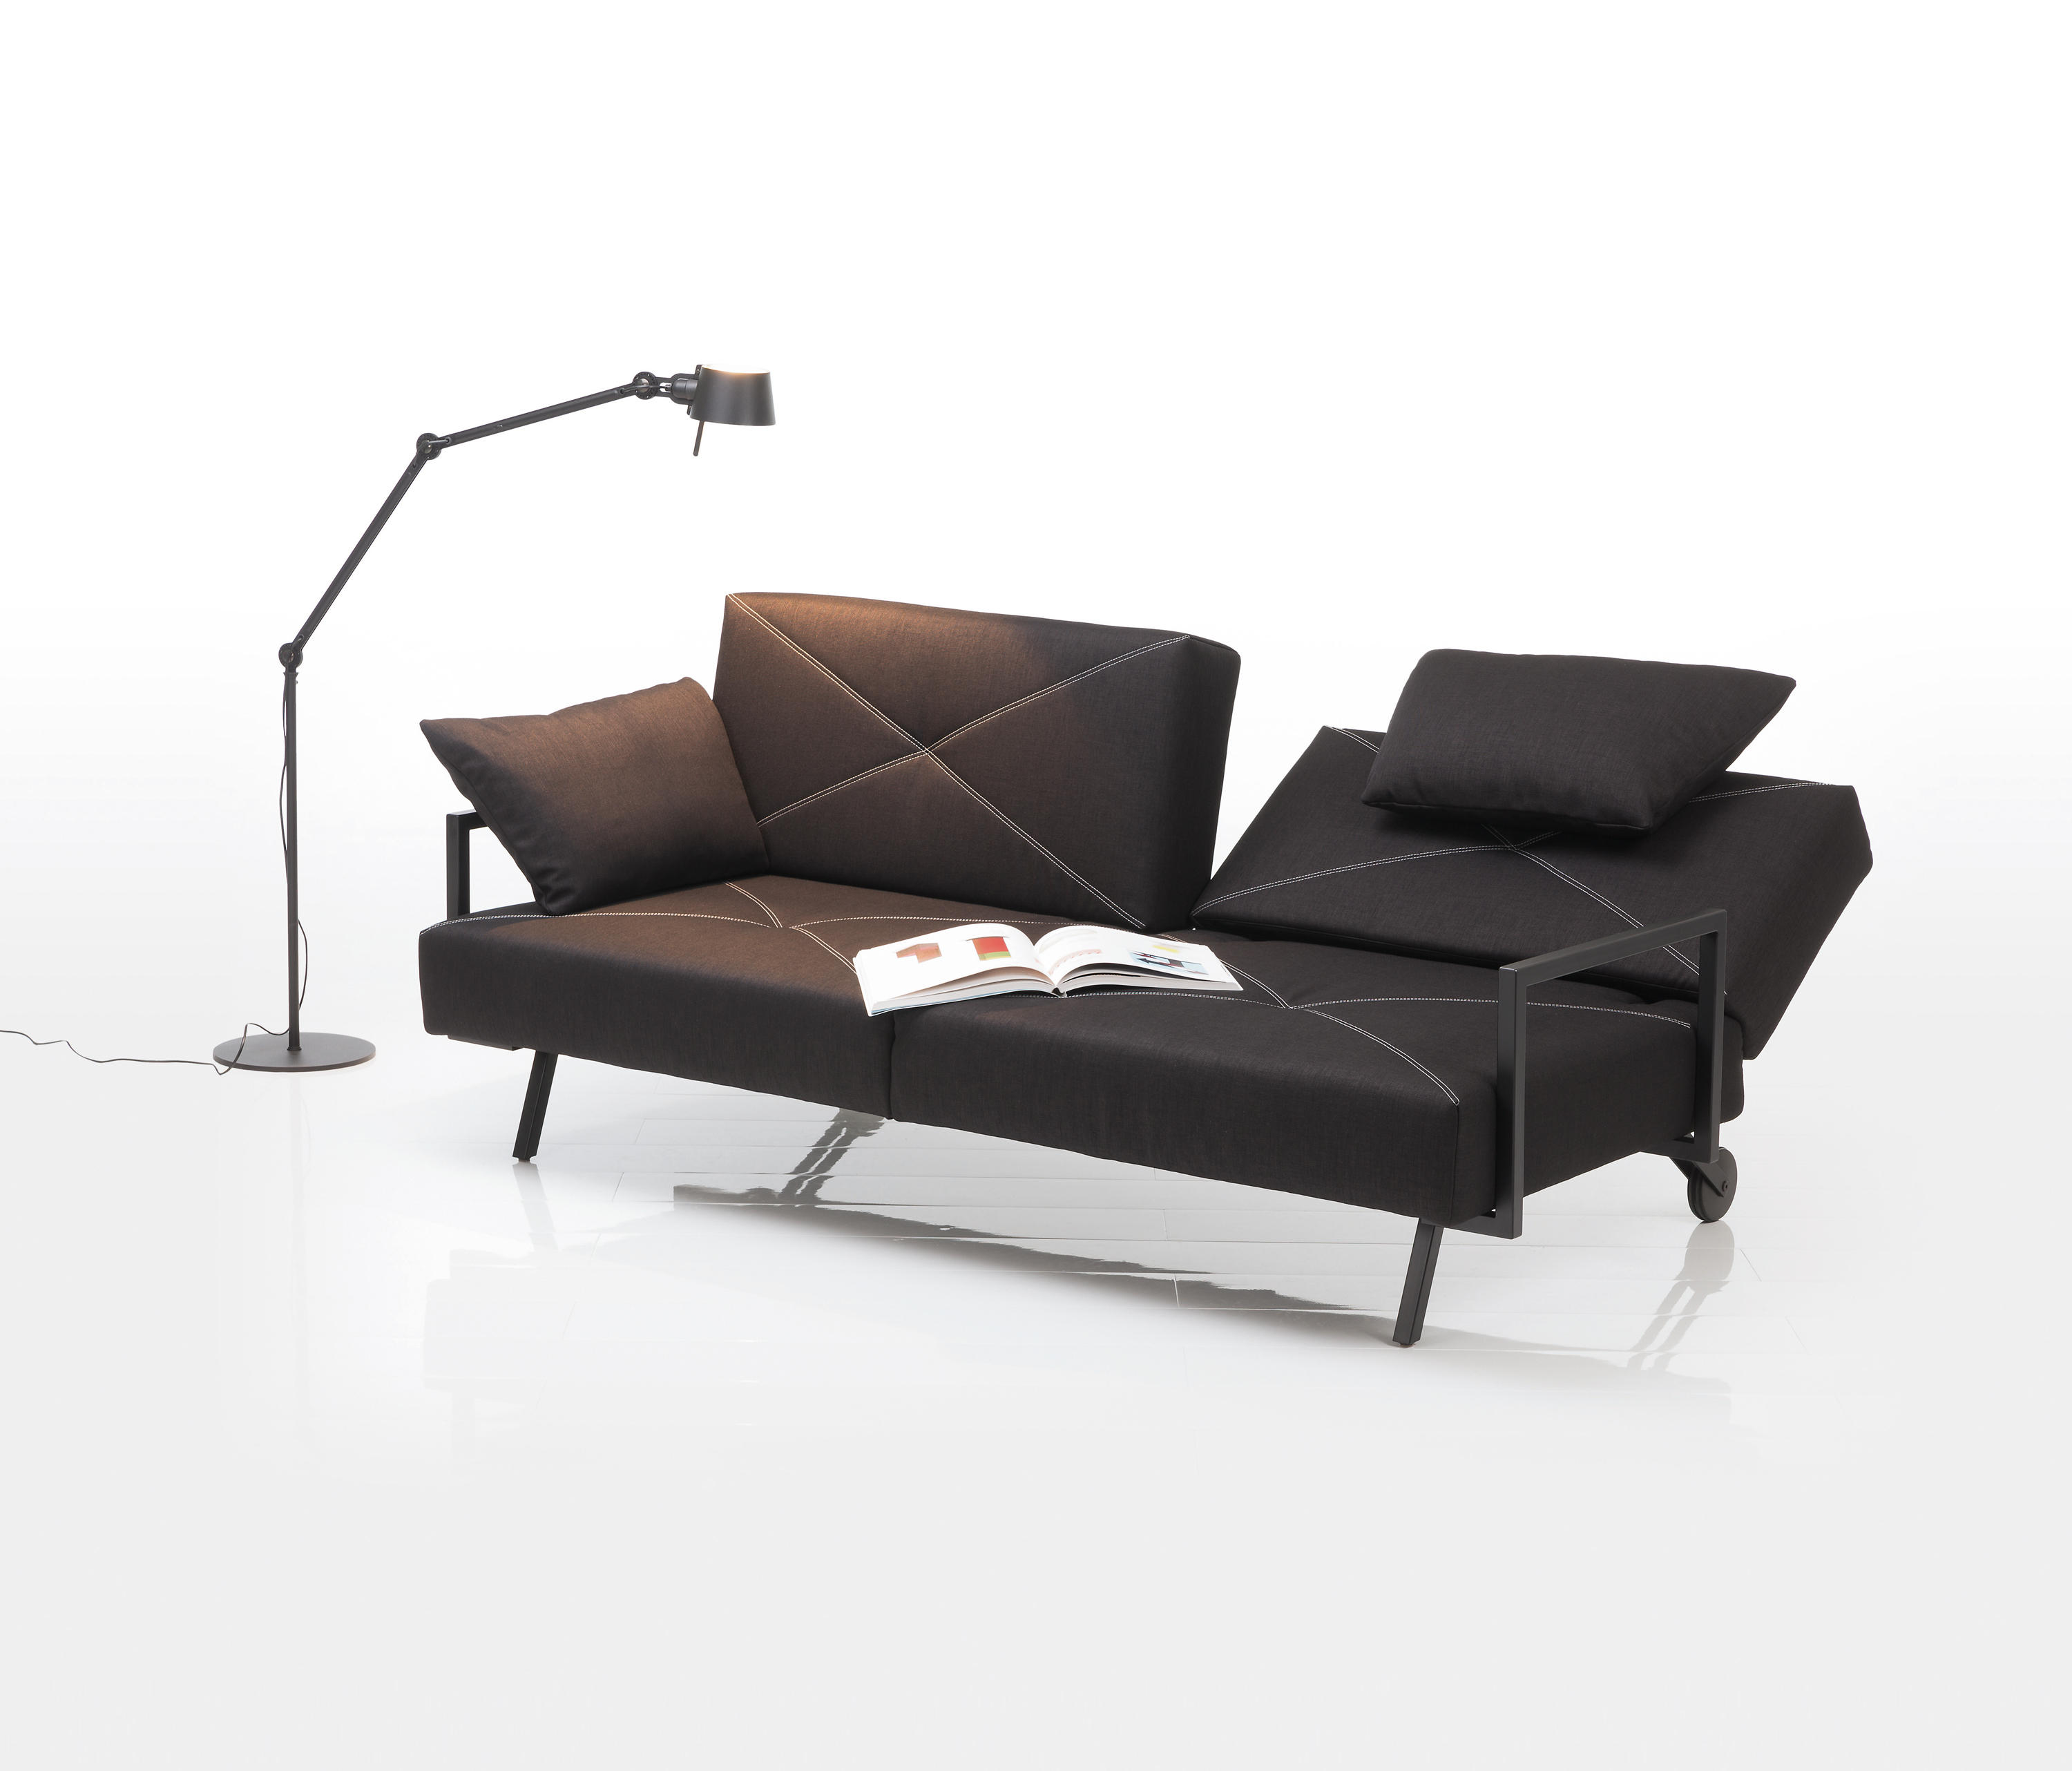 concert chaise longues von br hl architonic. Black Bedroom Furniture Sets. Home Design Ideas